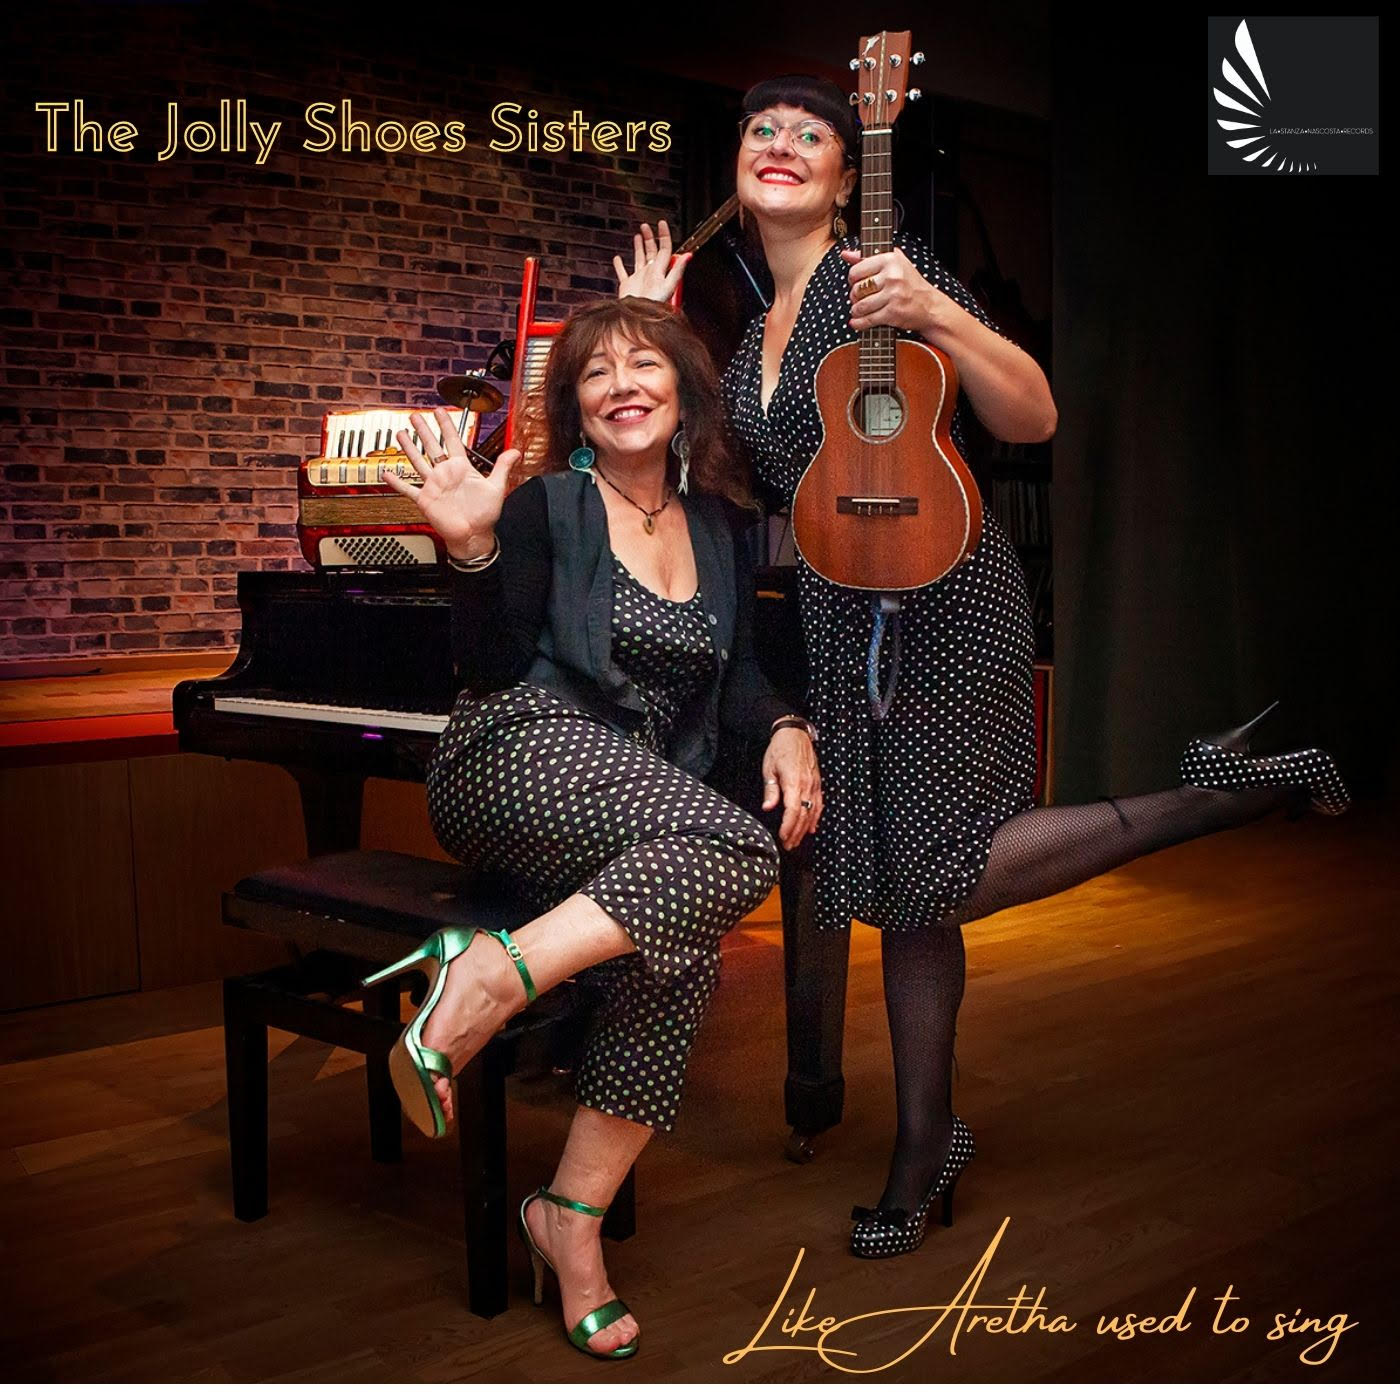 Laura Fedele eVeronica Sbergia, akaThe Jolly Shoes Sisters